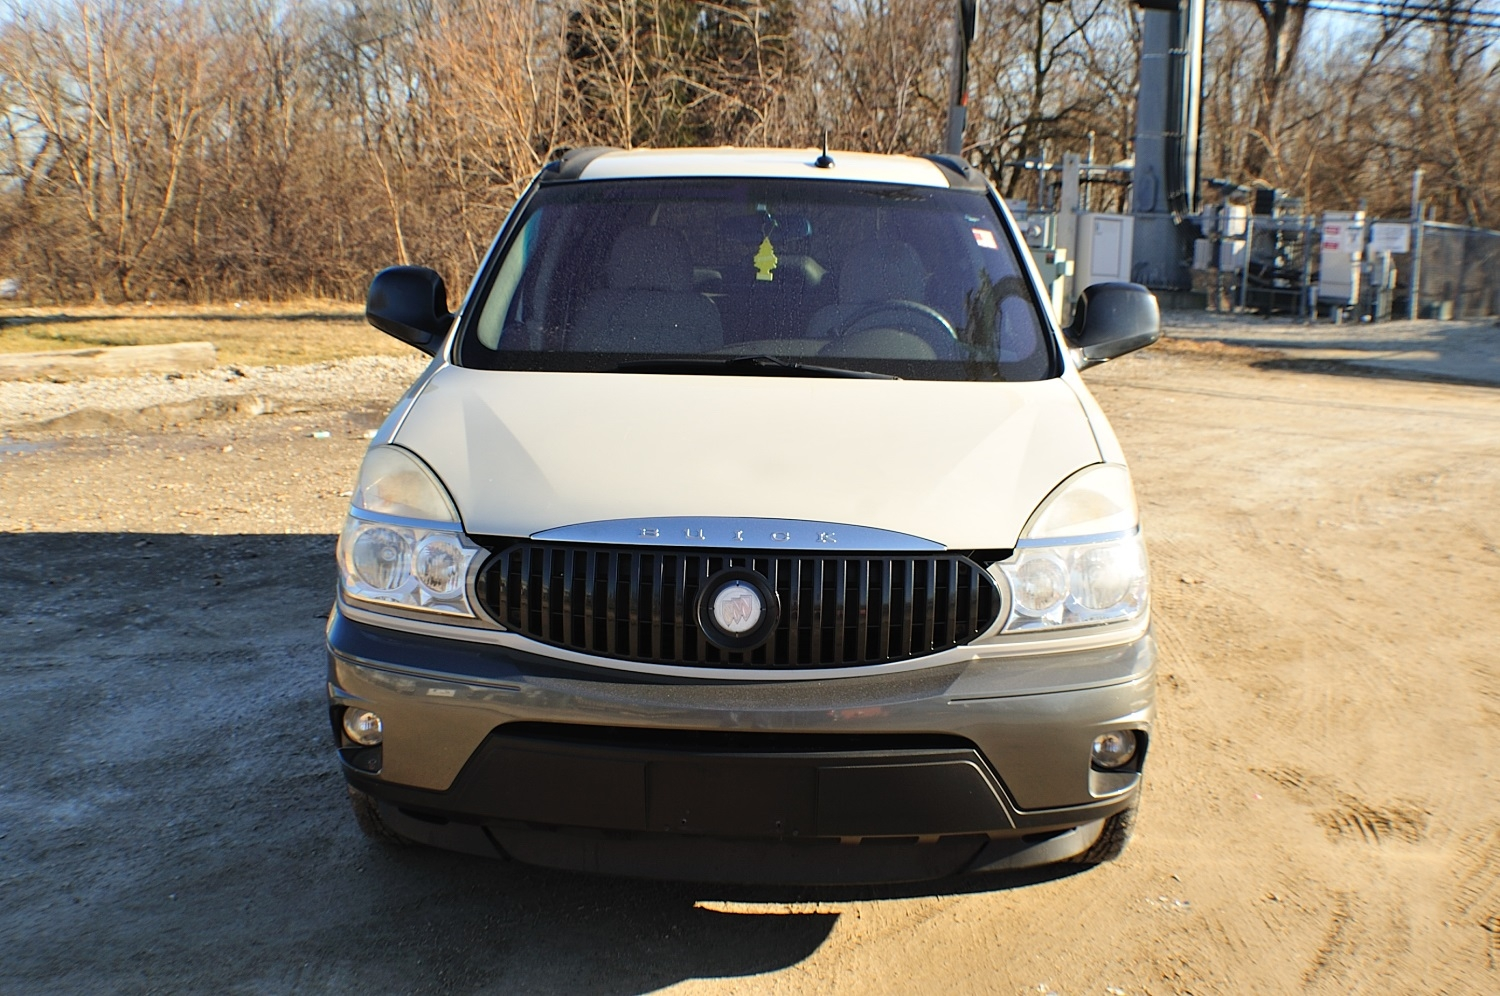 2005 Buick Rendezvous Tan SUV Sale Gurnee Kenosha Mchenry Chicago Illinois